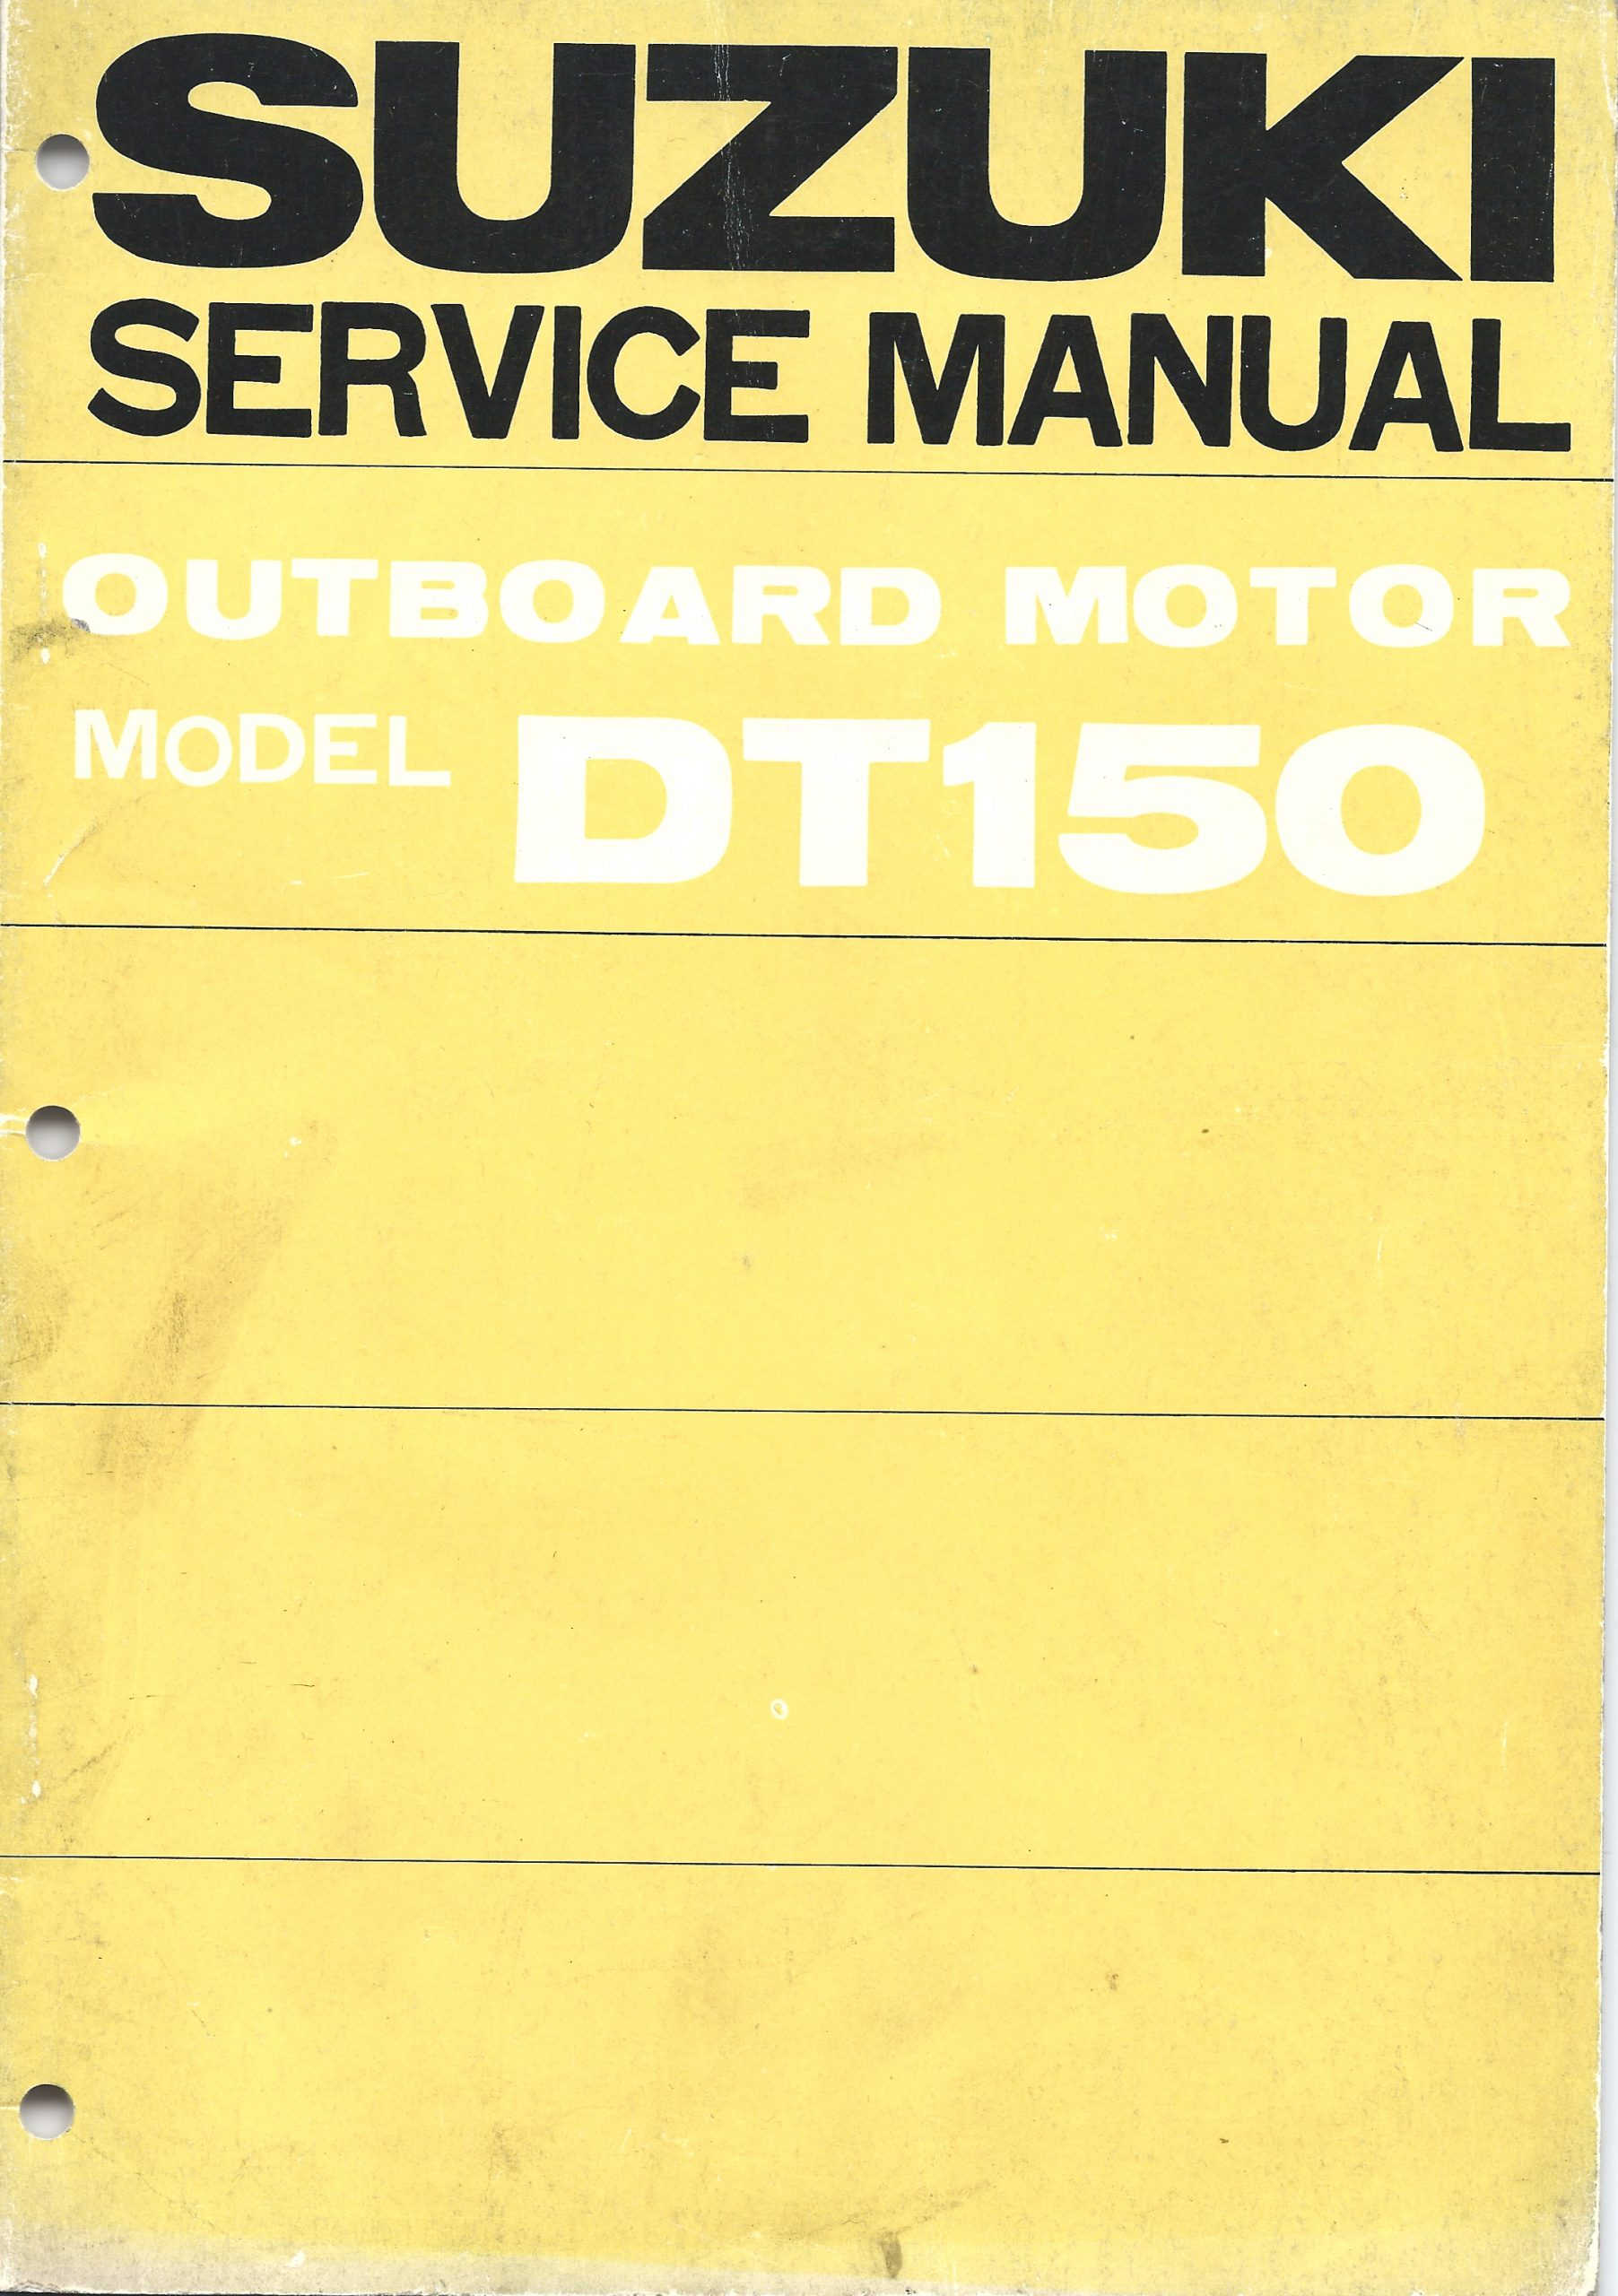 Suzuki Outboard Service Manual Model Dt150 Outboard Manuals Net